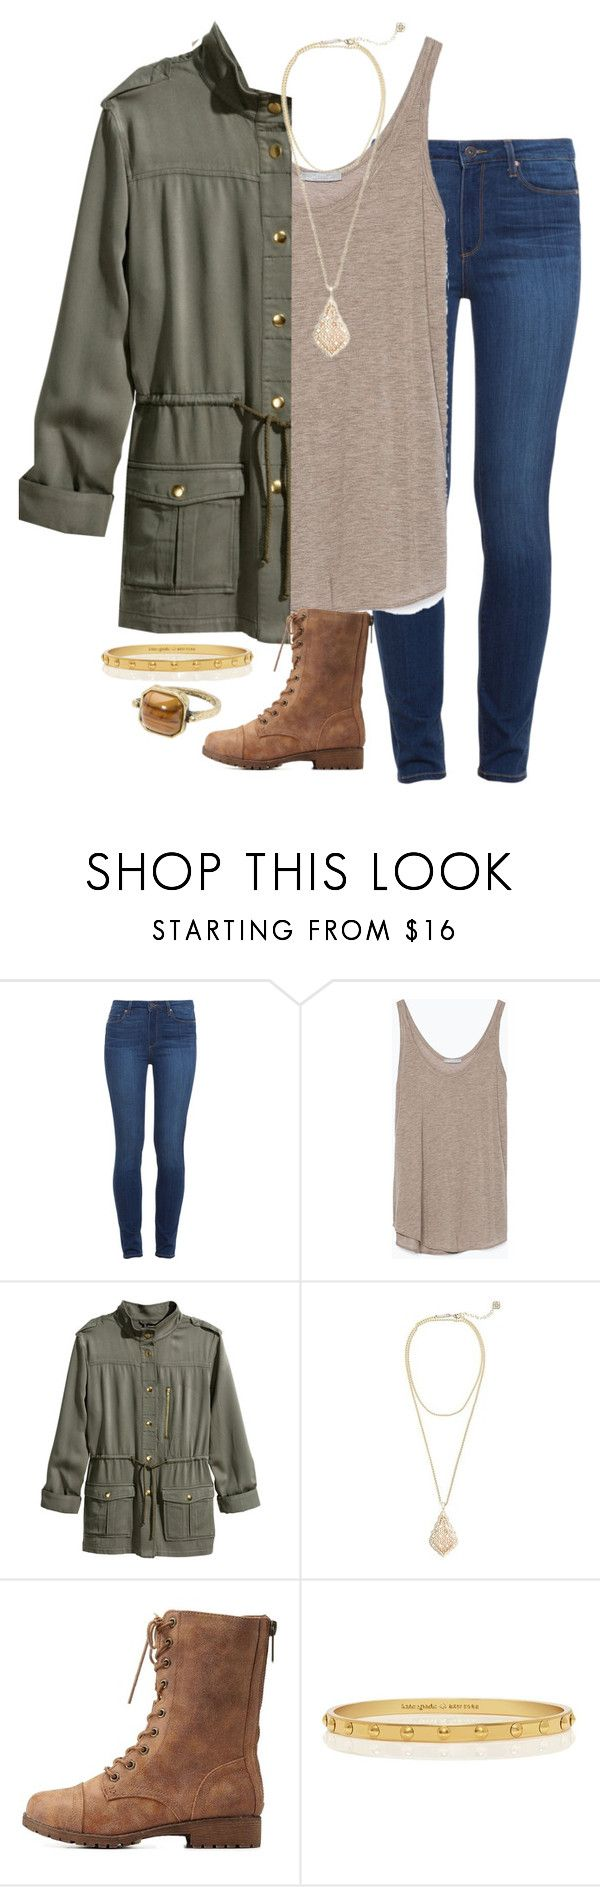 """Can't sleep"" by madelynprice ❤ liked on Polyvore featuring Paige Denim, Zara, H&M, Kendra Scott, Charlotte Russe, Kate Spade and MANGO"